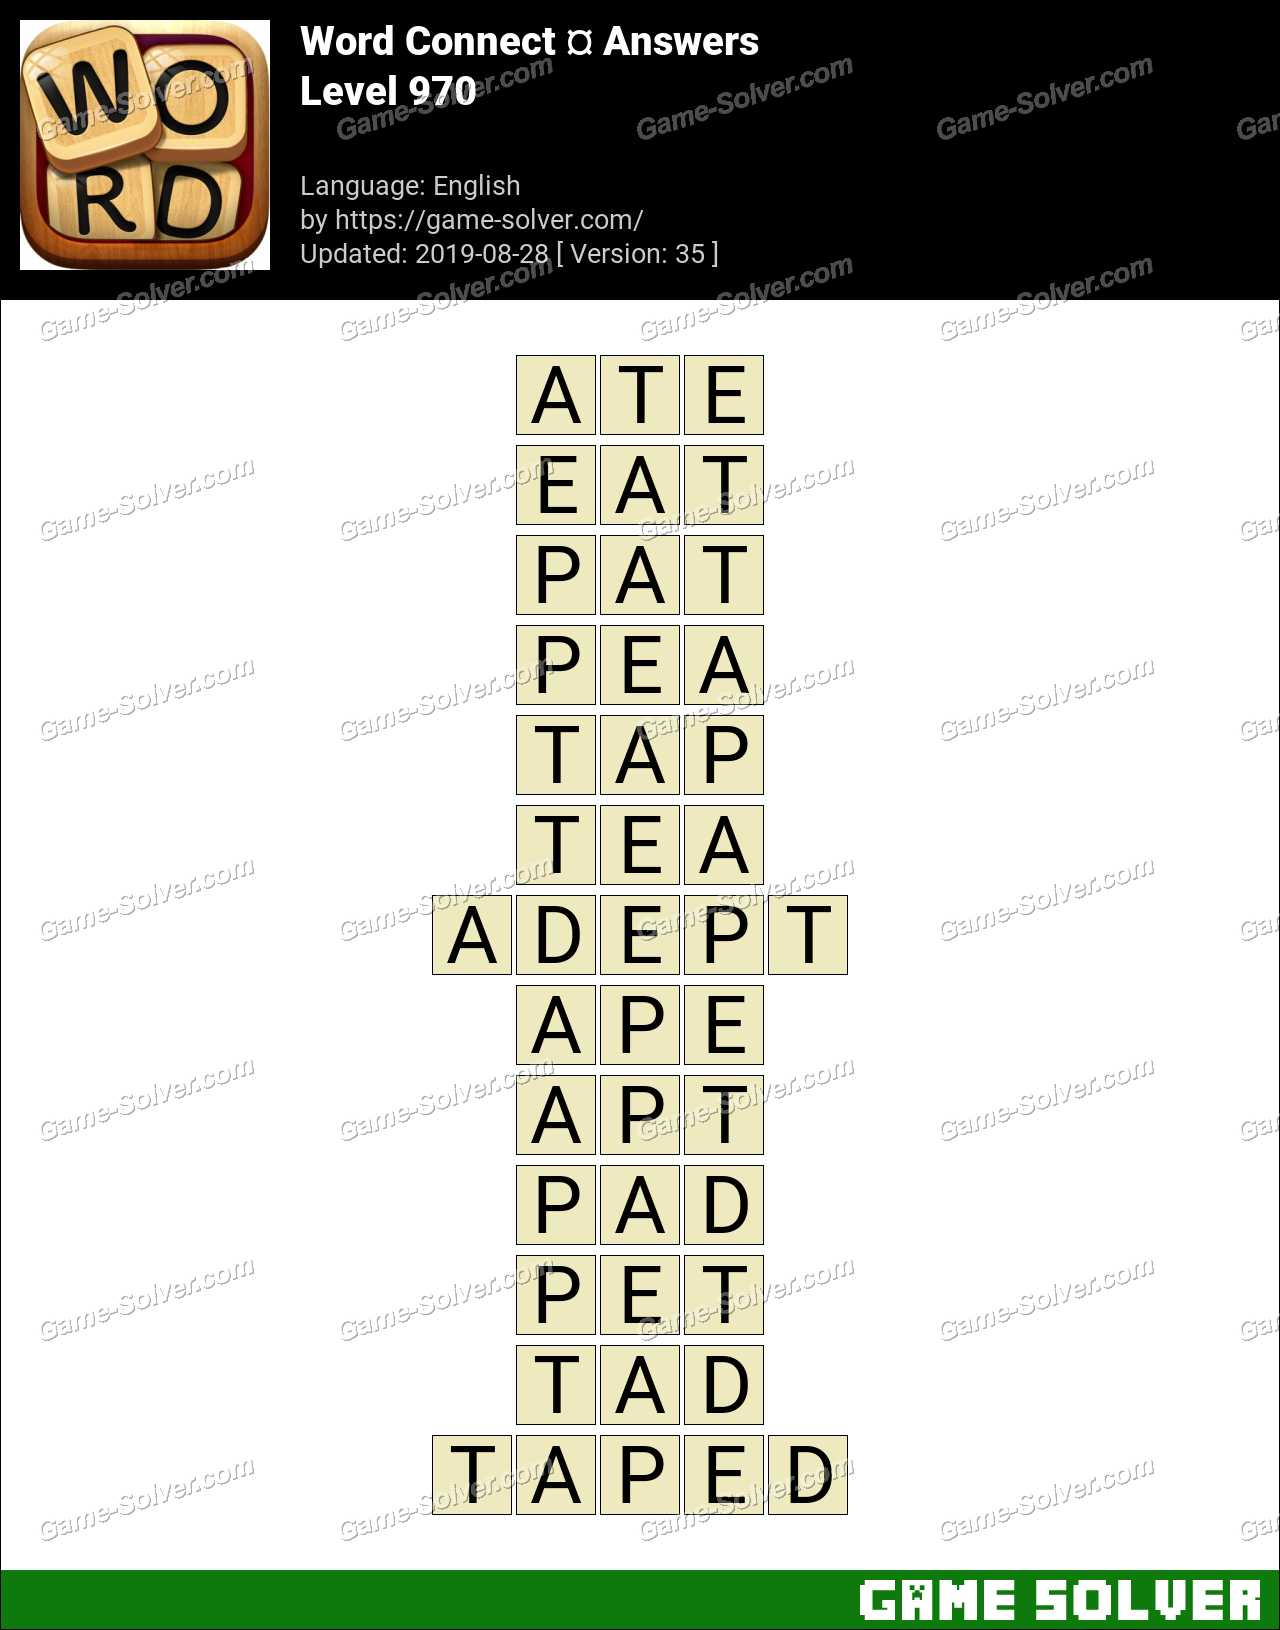 Word Connect Level 970 Answers